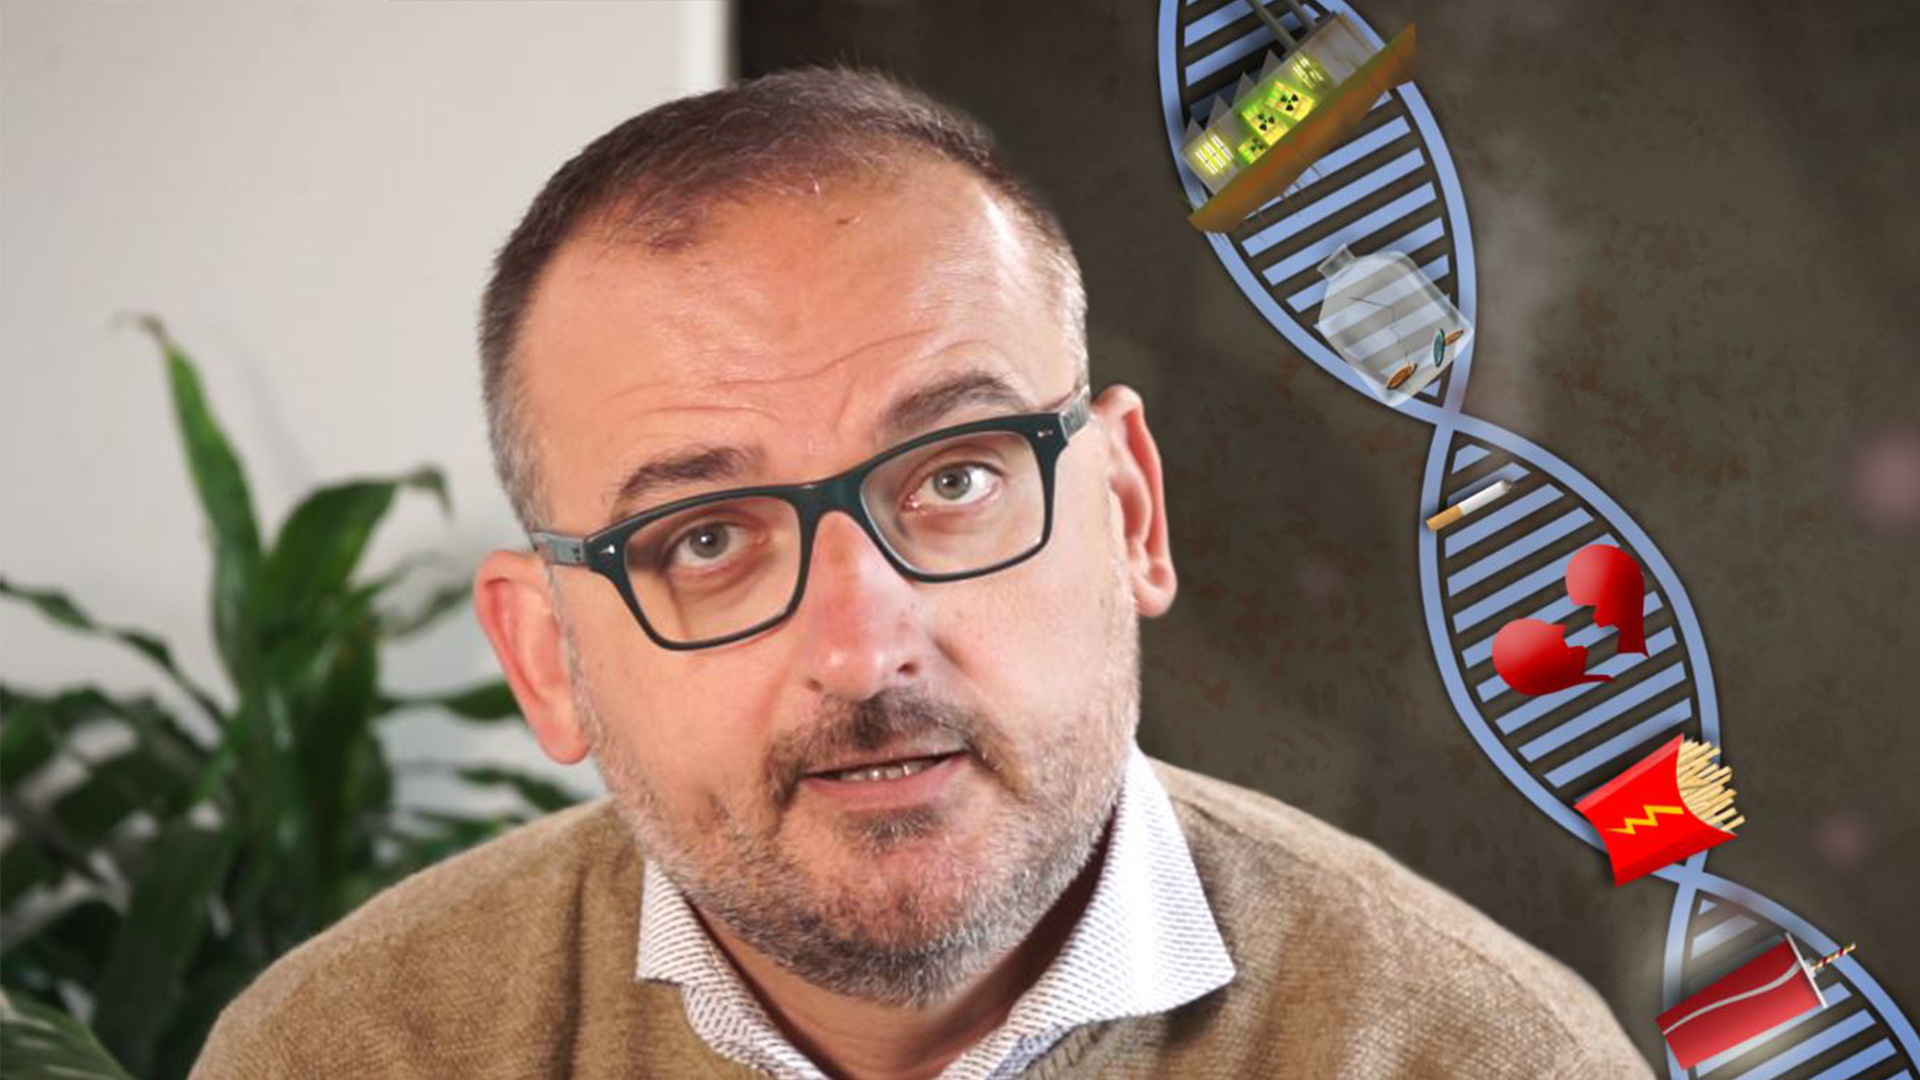 A/Professor Maurizio Meloni says that epigenetics can be an attractive rhetoric for vulnerable groups to make claims about social justice or reparations.